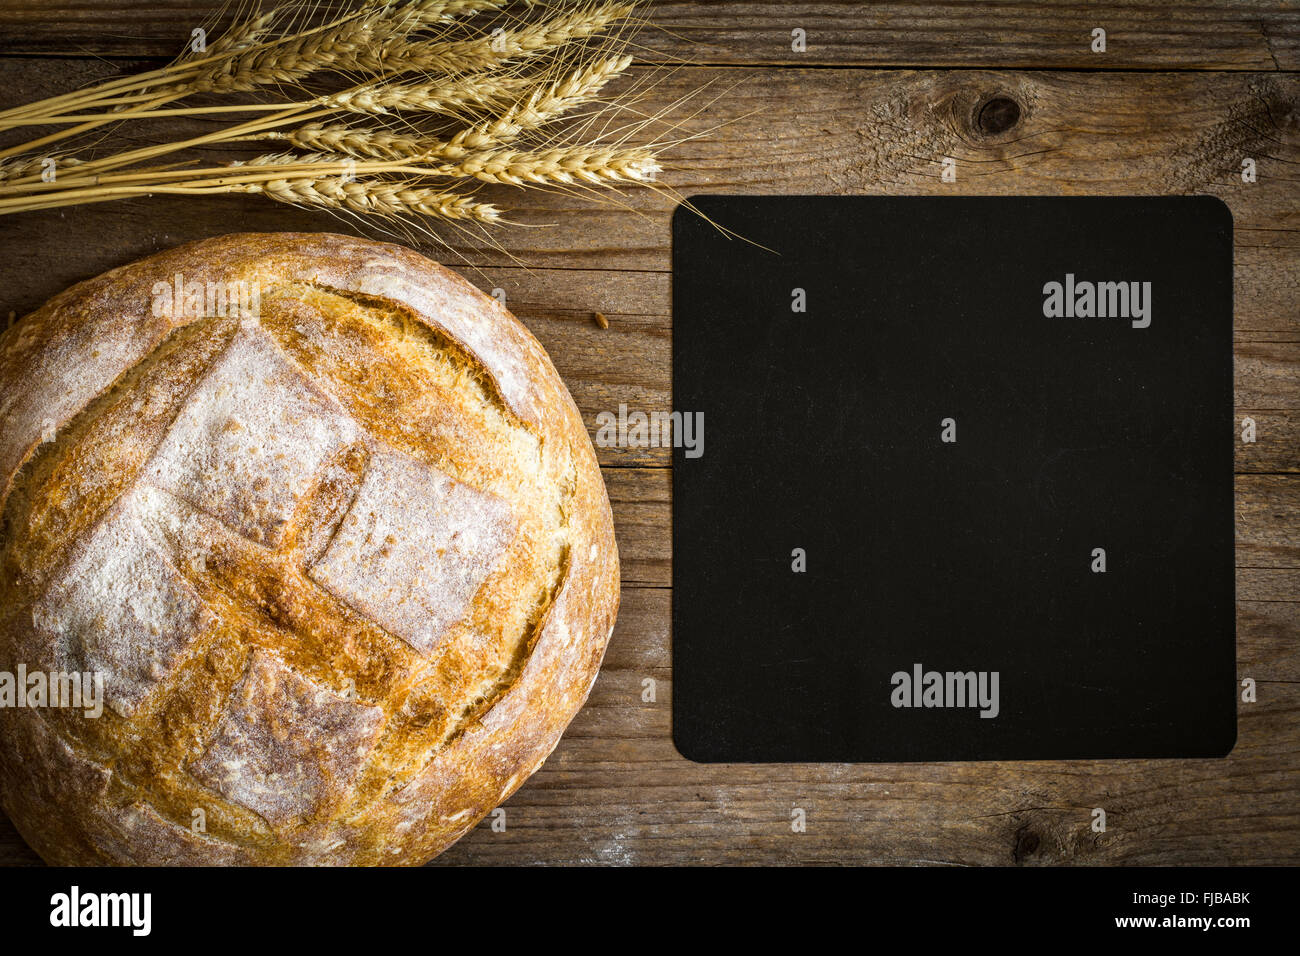 Chalkboard, loaf of bread and wheat ears on wooden background, overhead view - Stock Image